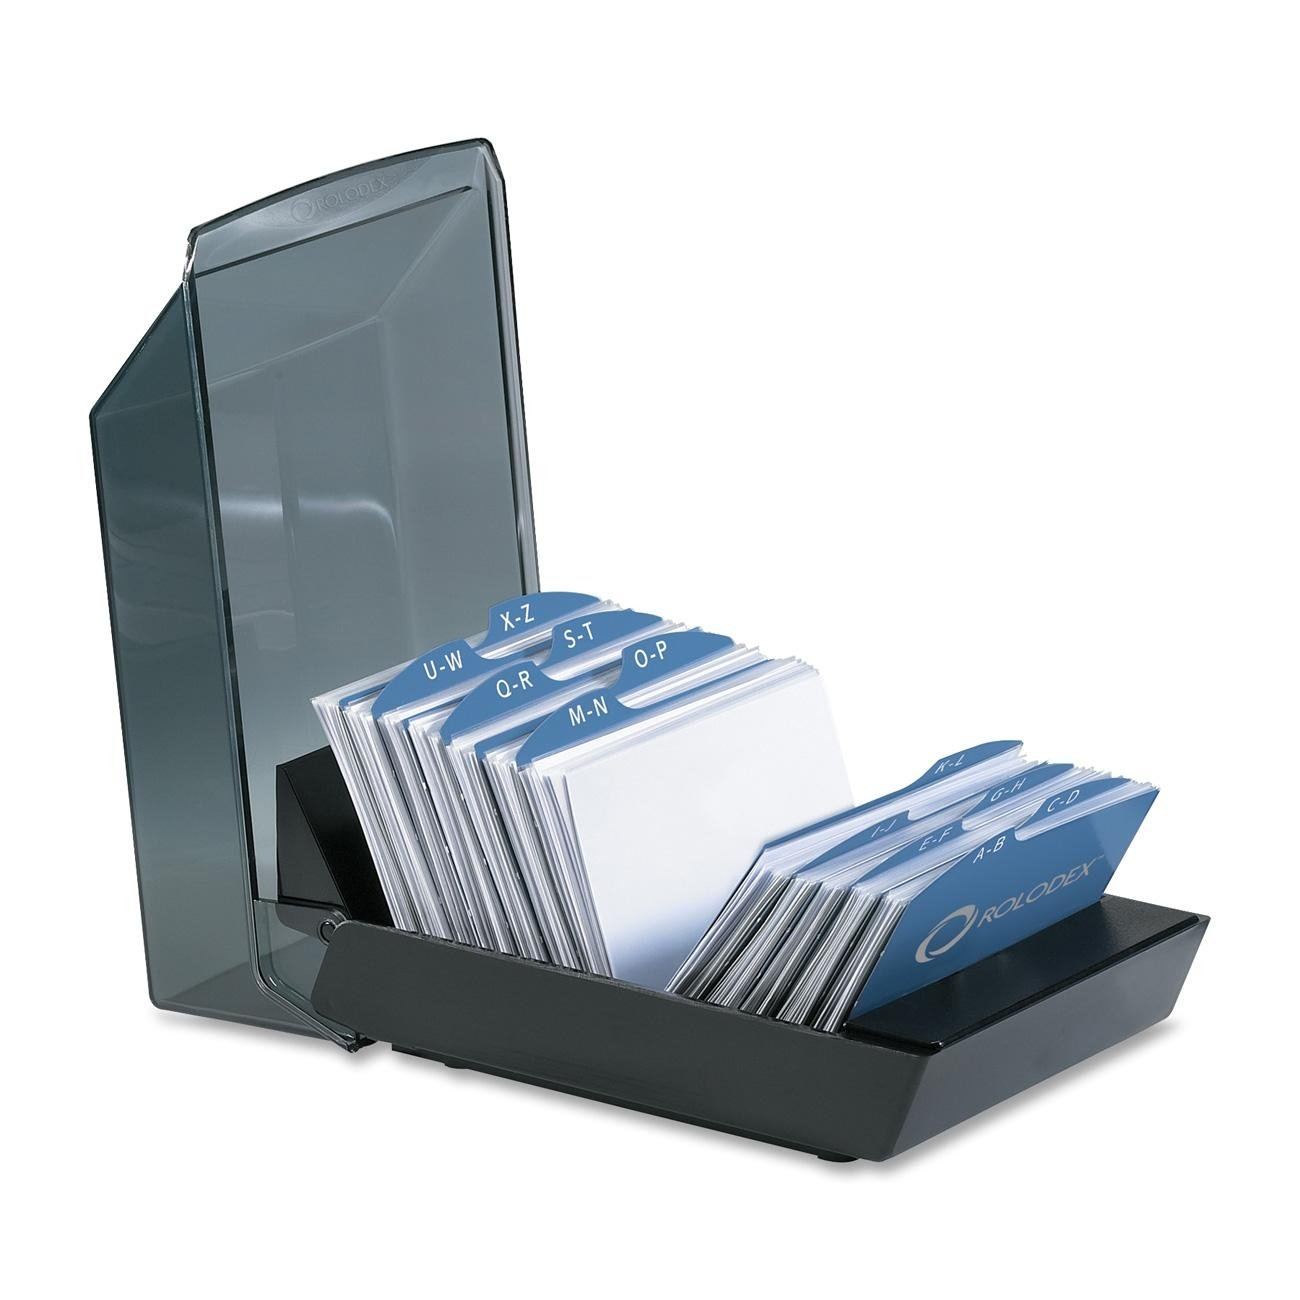 Rolodex 67208 Rolodex Covered Tray Business Card File, 100 Sleeves, 200-Card Capacity, BK/SKE